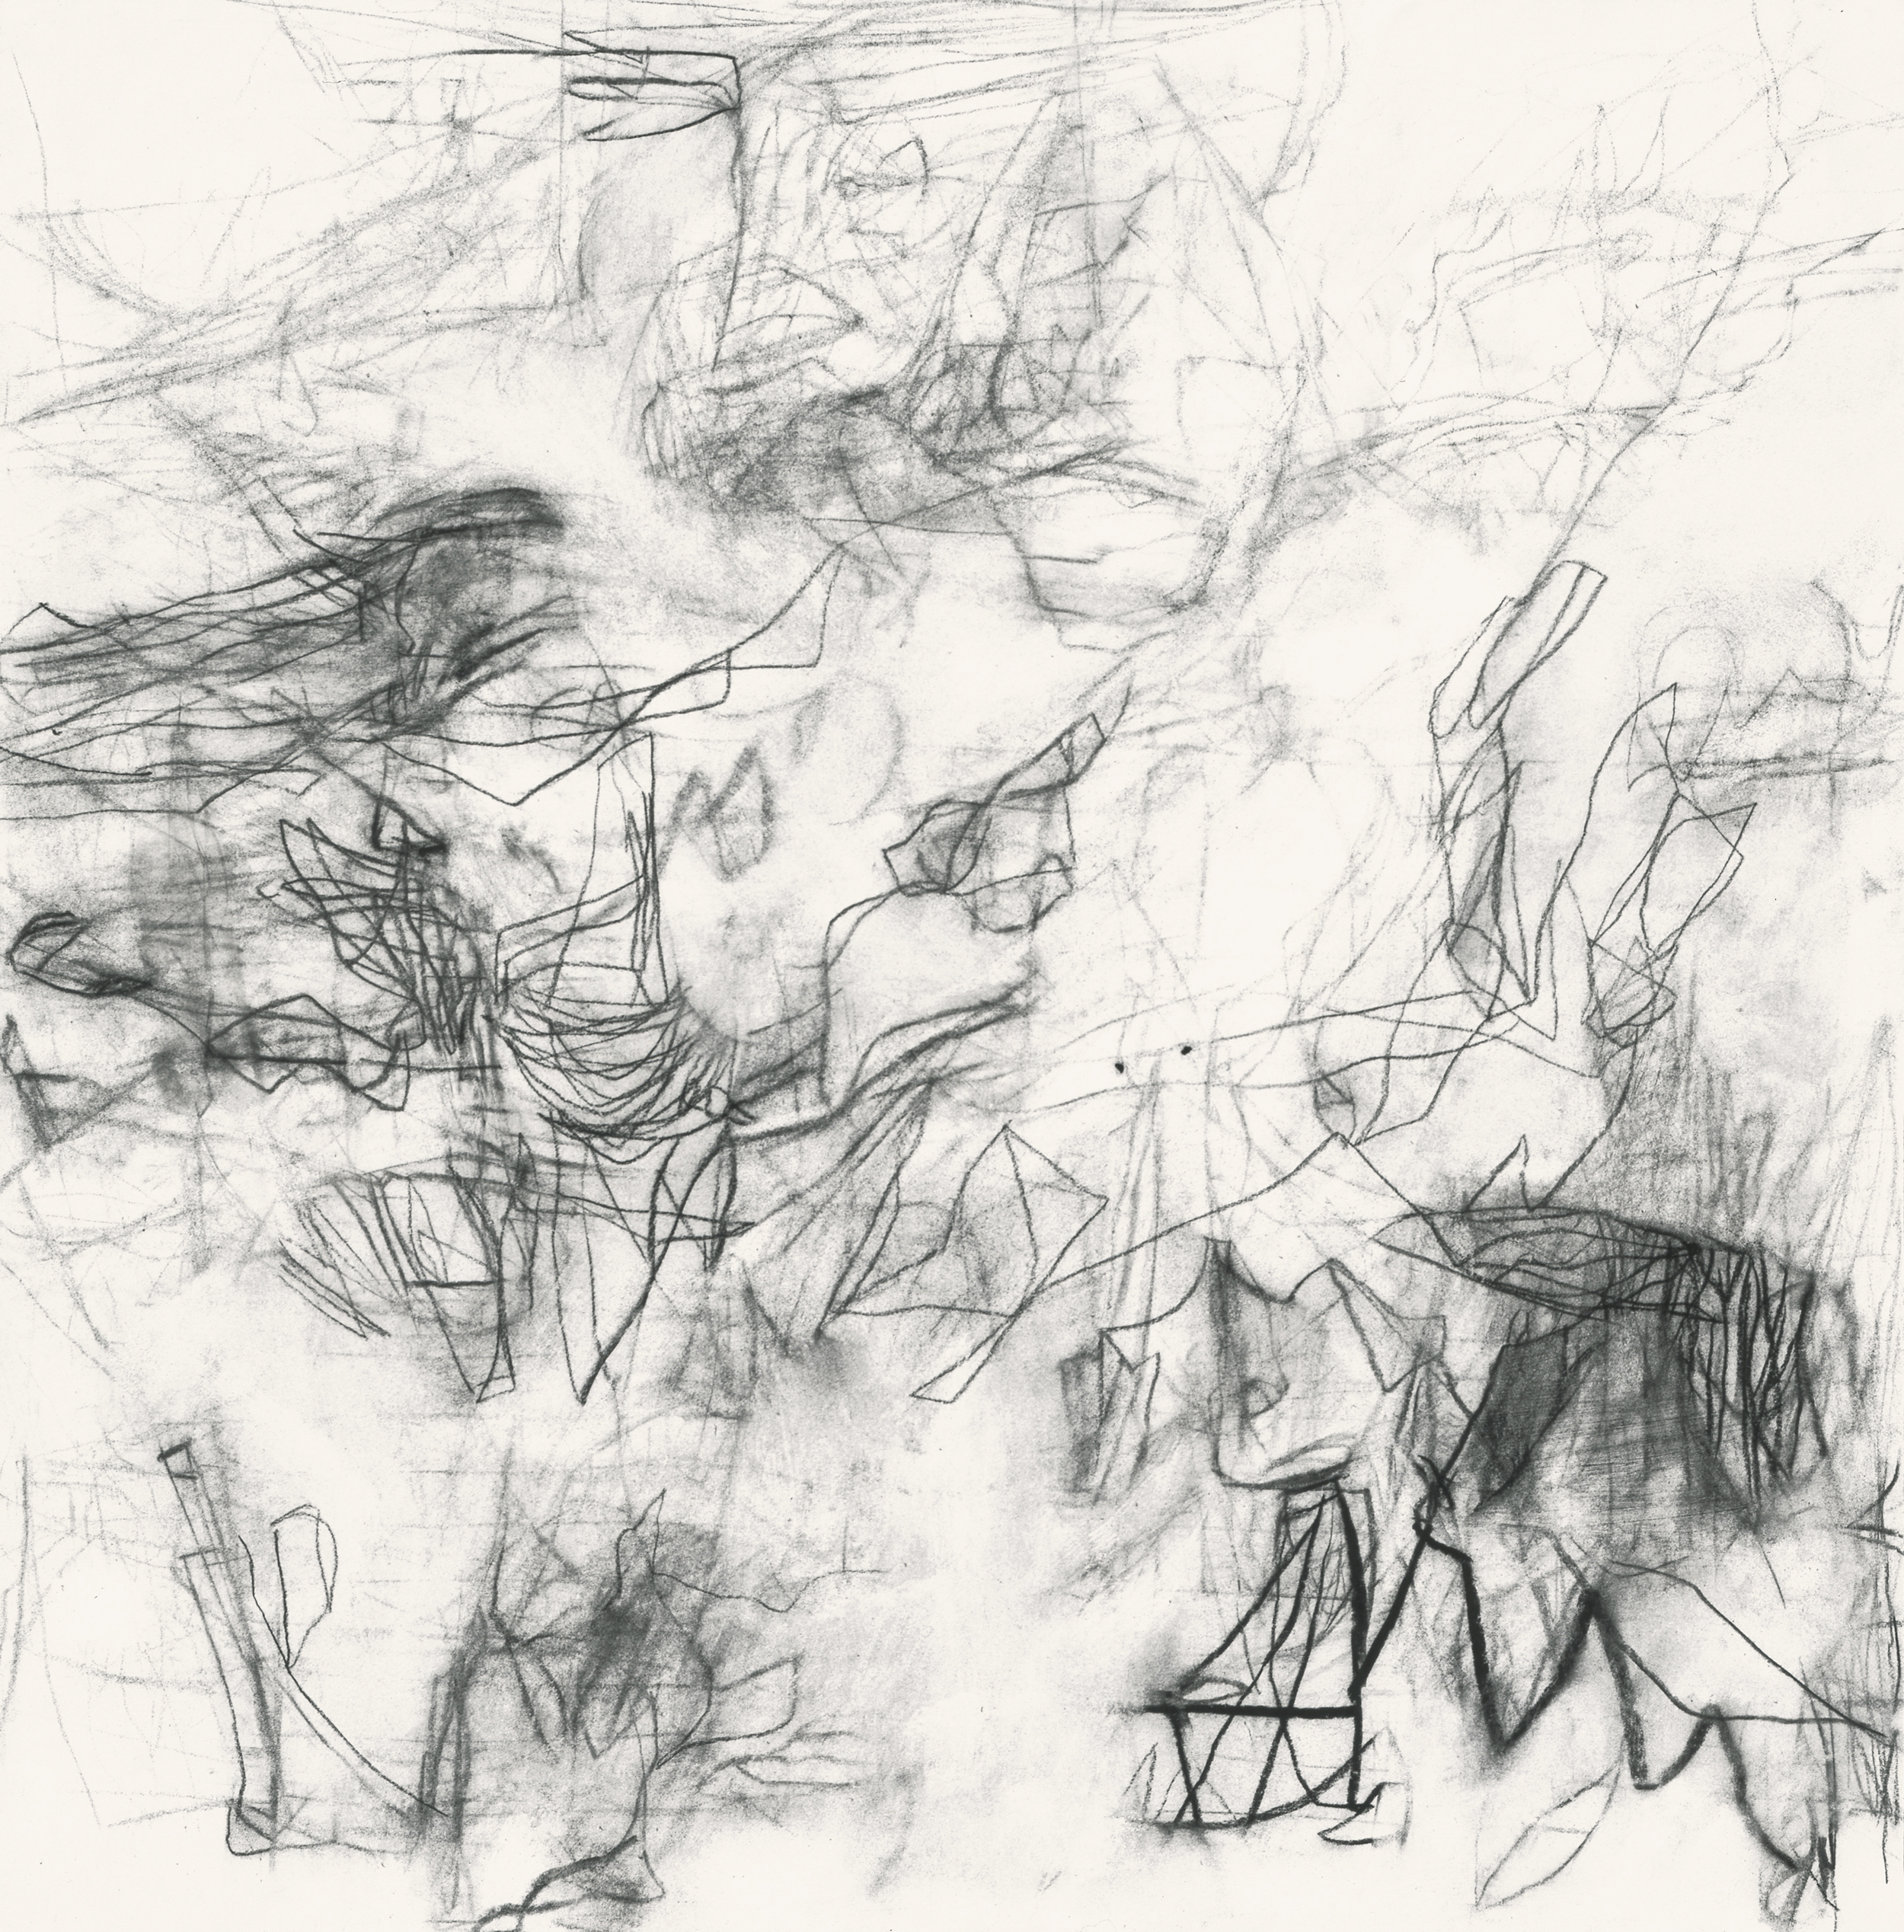 Untitled (sc.00.22), 2000 charcoal, rabbit skin glue on paper 18 3/8 x 18 inches Collection: The Bryant Group